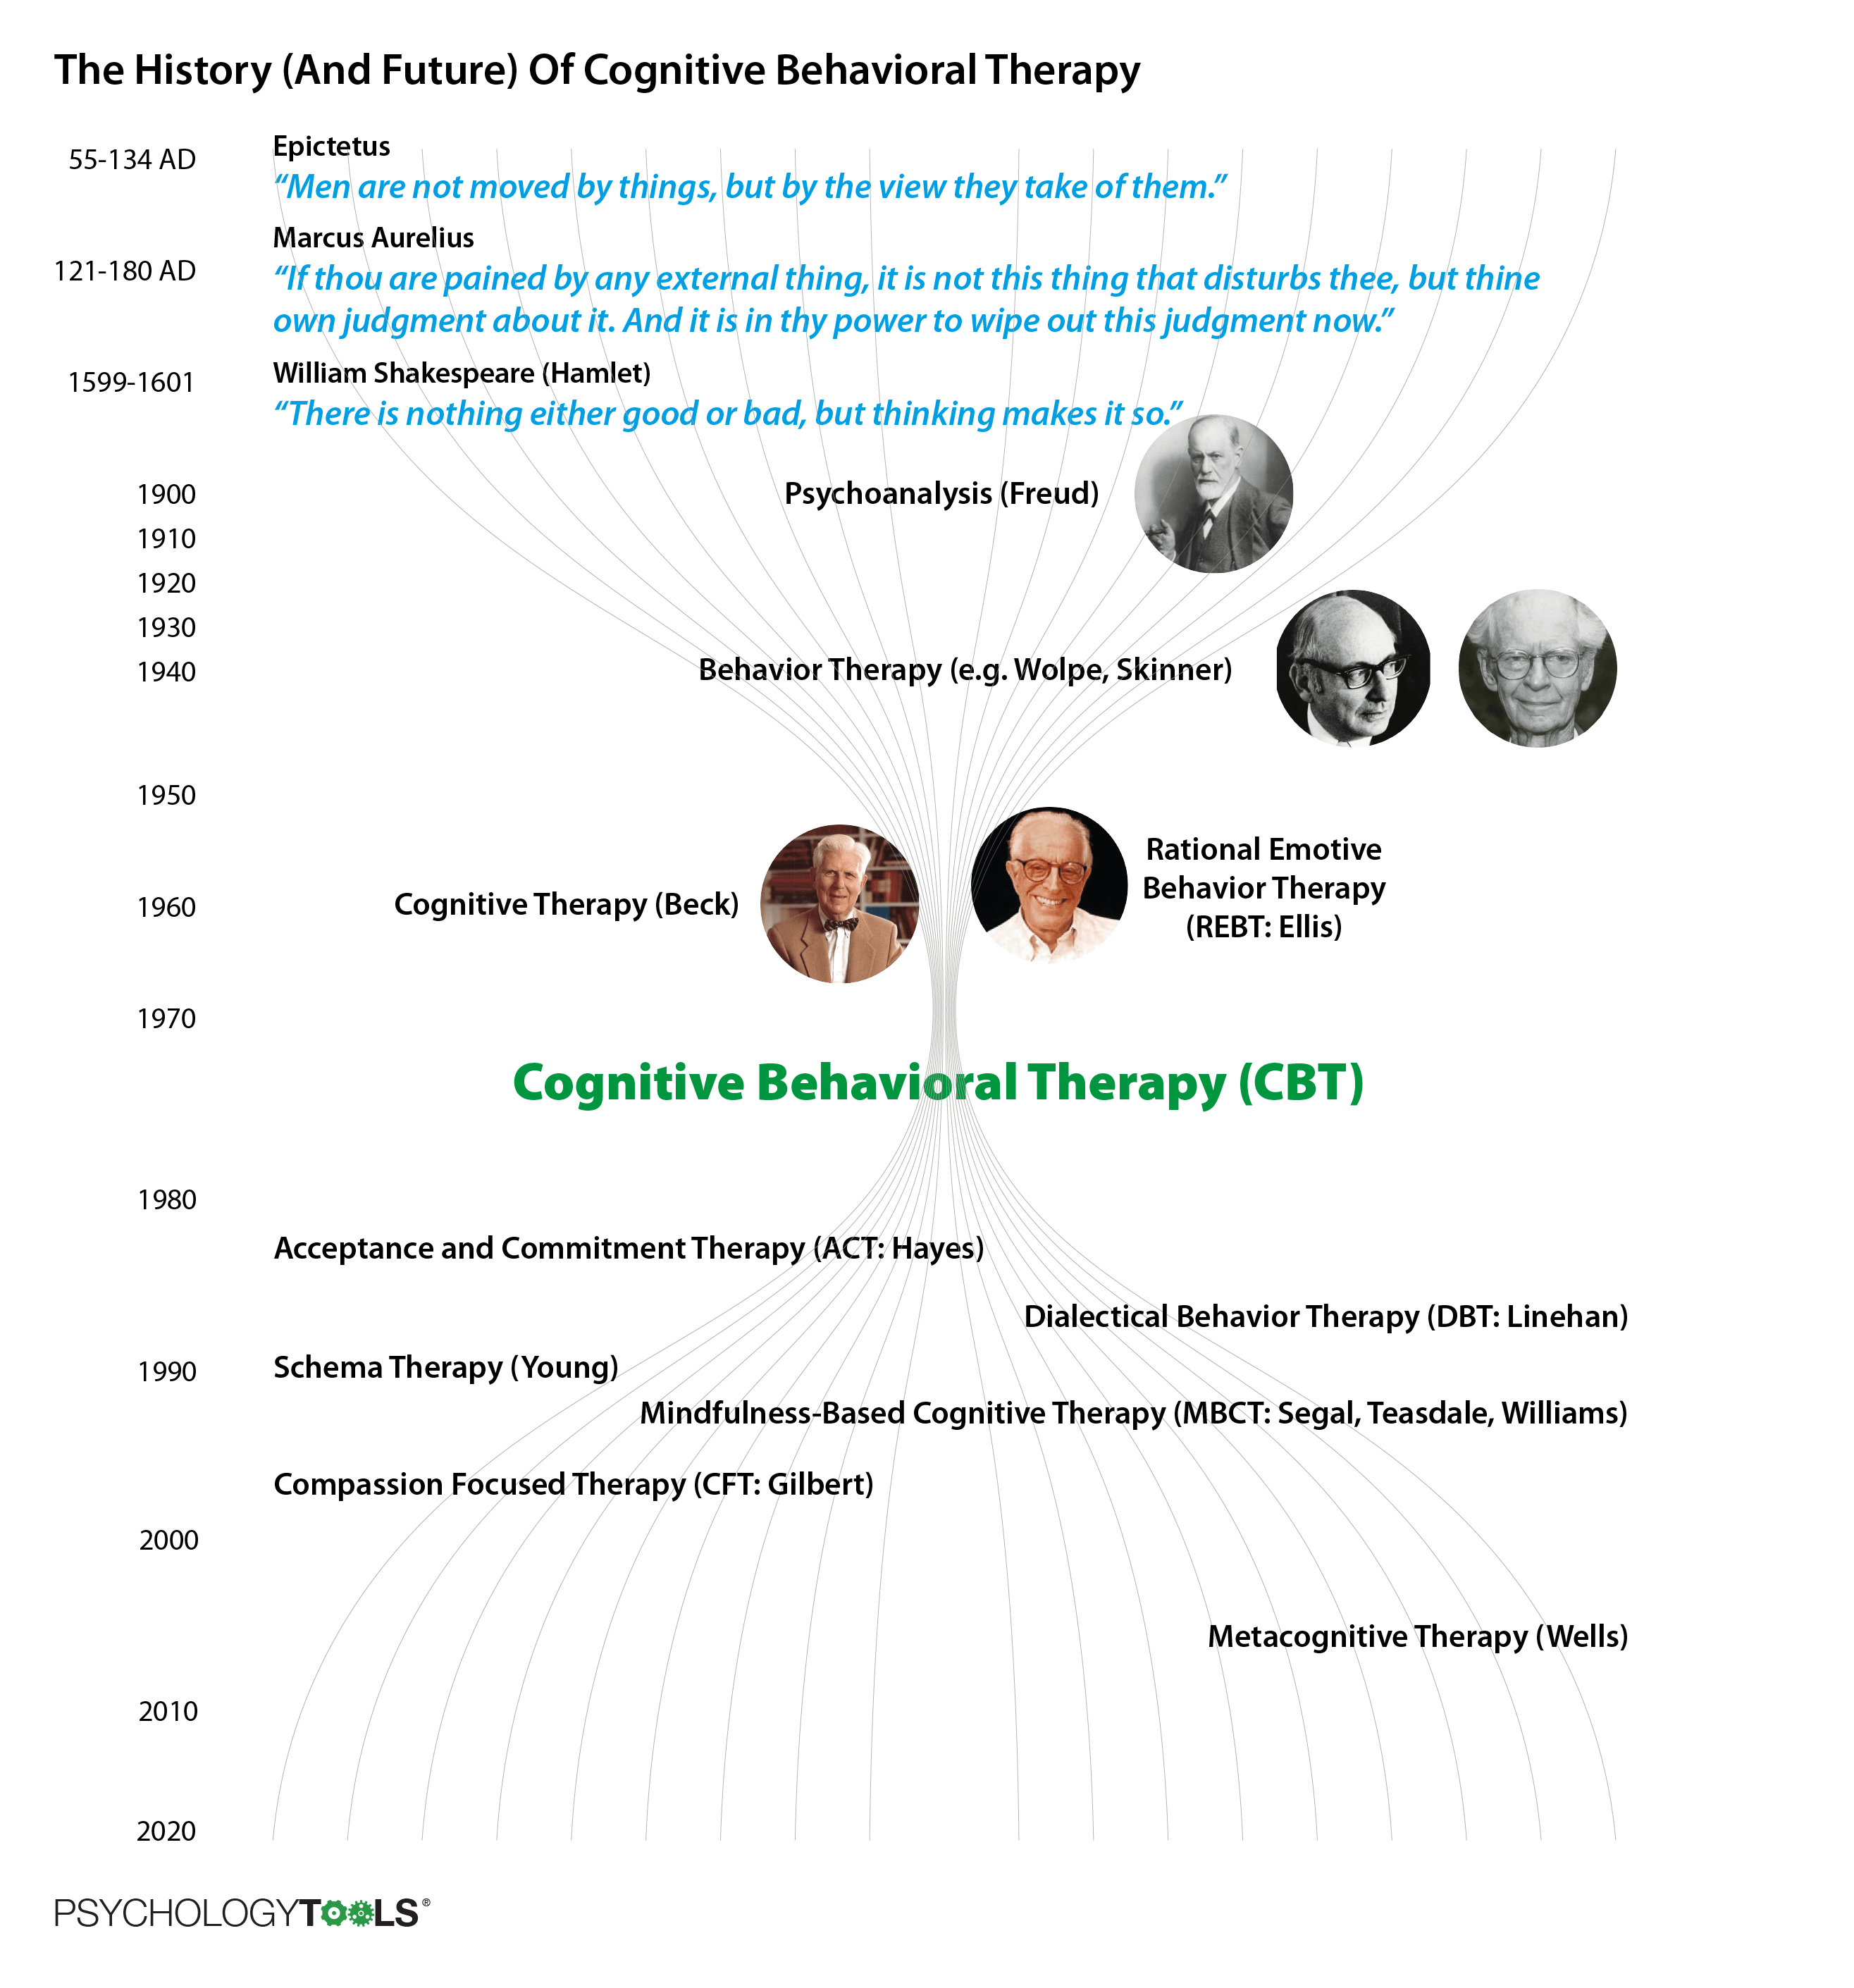 The history and future of CBT a timeline